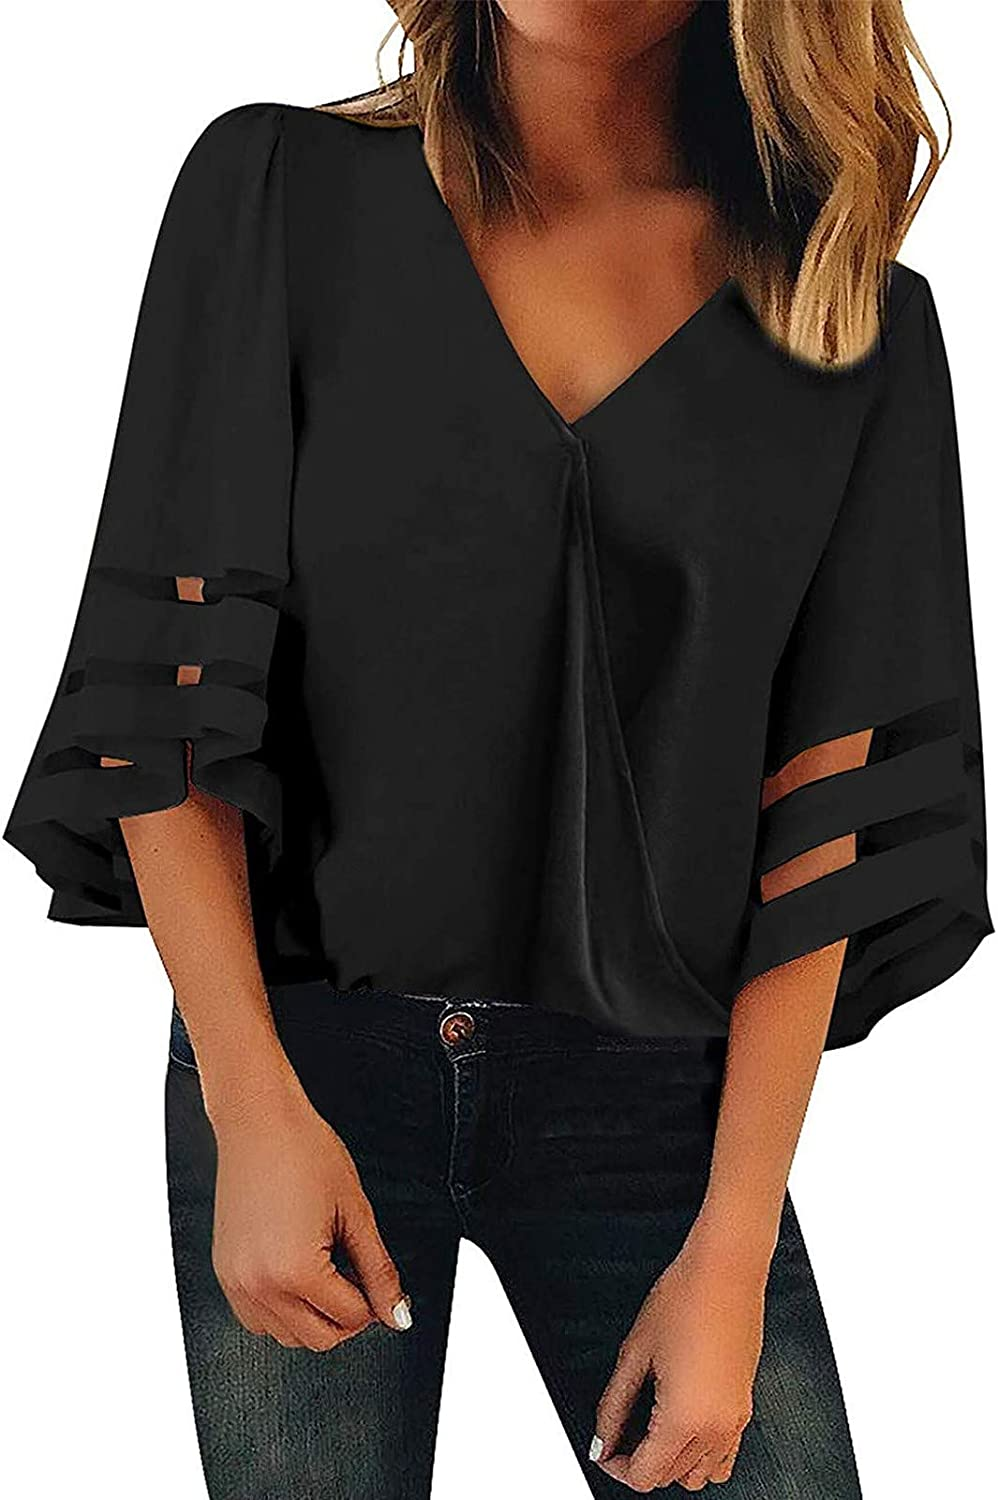 Women's V Neck Mesh Panel Blouse 3 store Seattle Mall 4 Bell Top Sleeve Shirt Loose